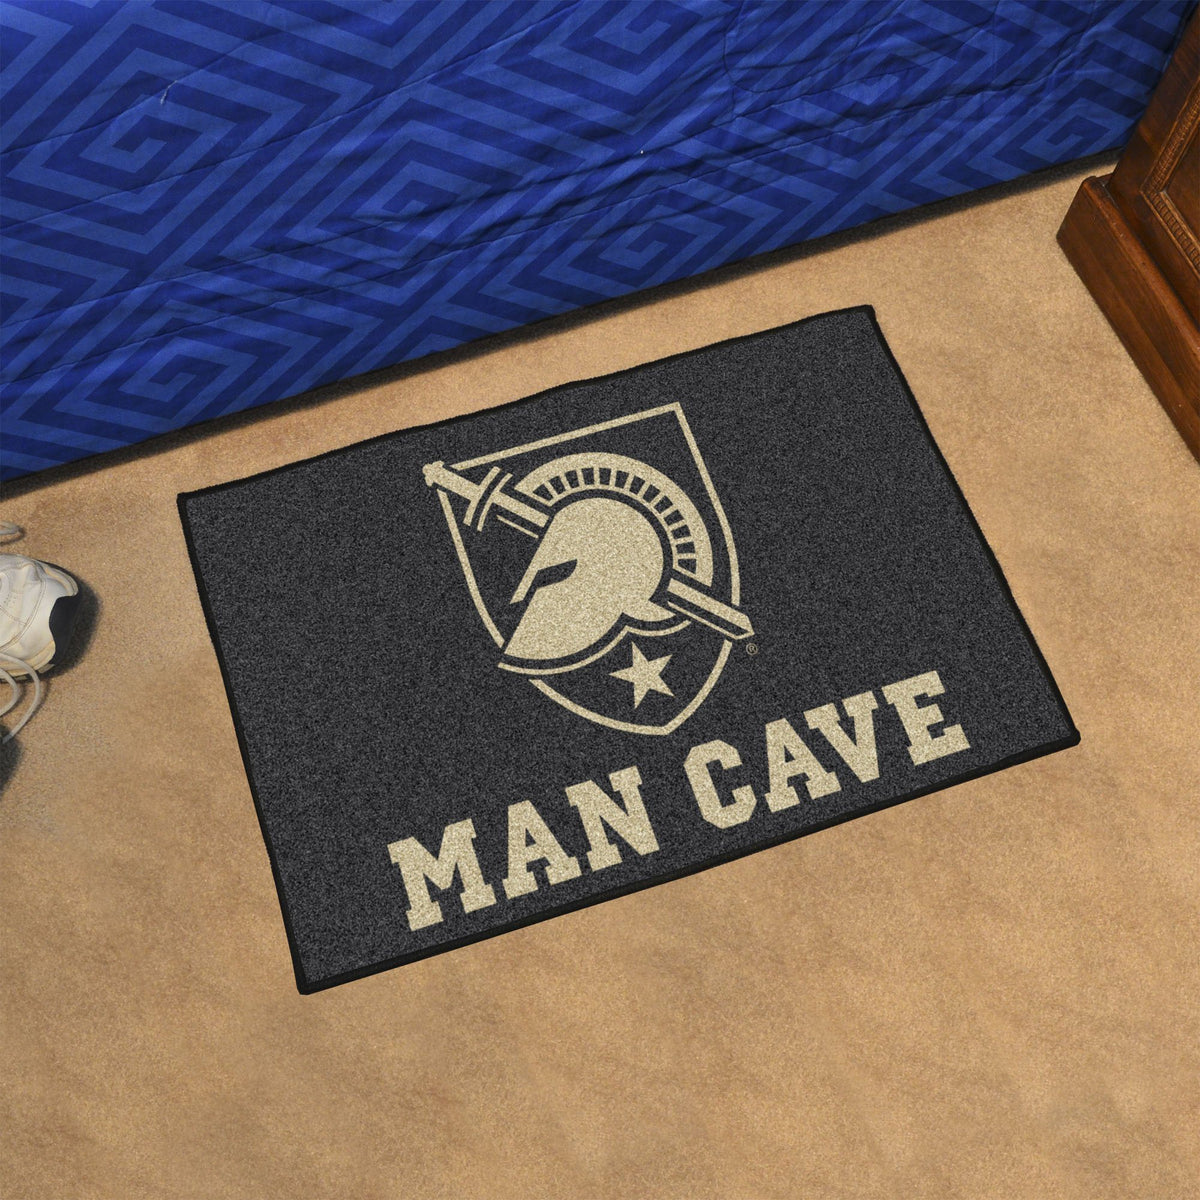 Collegiate - Man Cave Starter Collegiate Mats, Rectangular Mats, Man Cave Starter, Collegiate, Home Fan Mats Army West Point